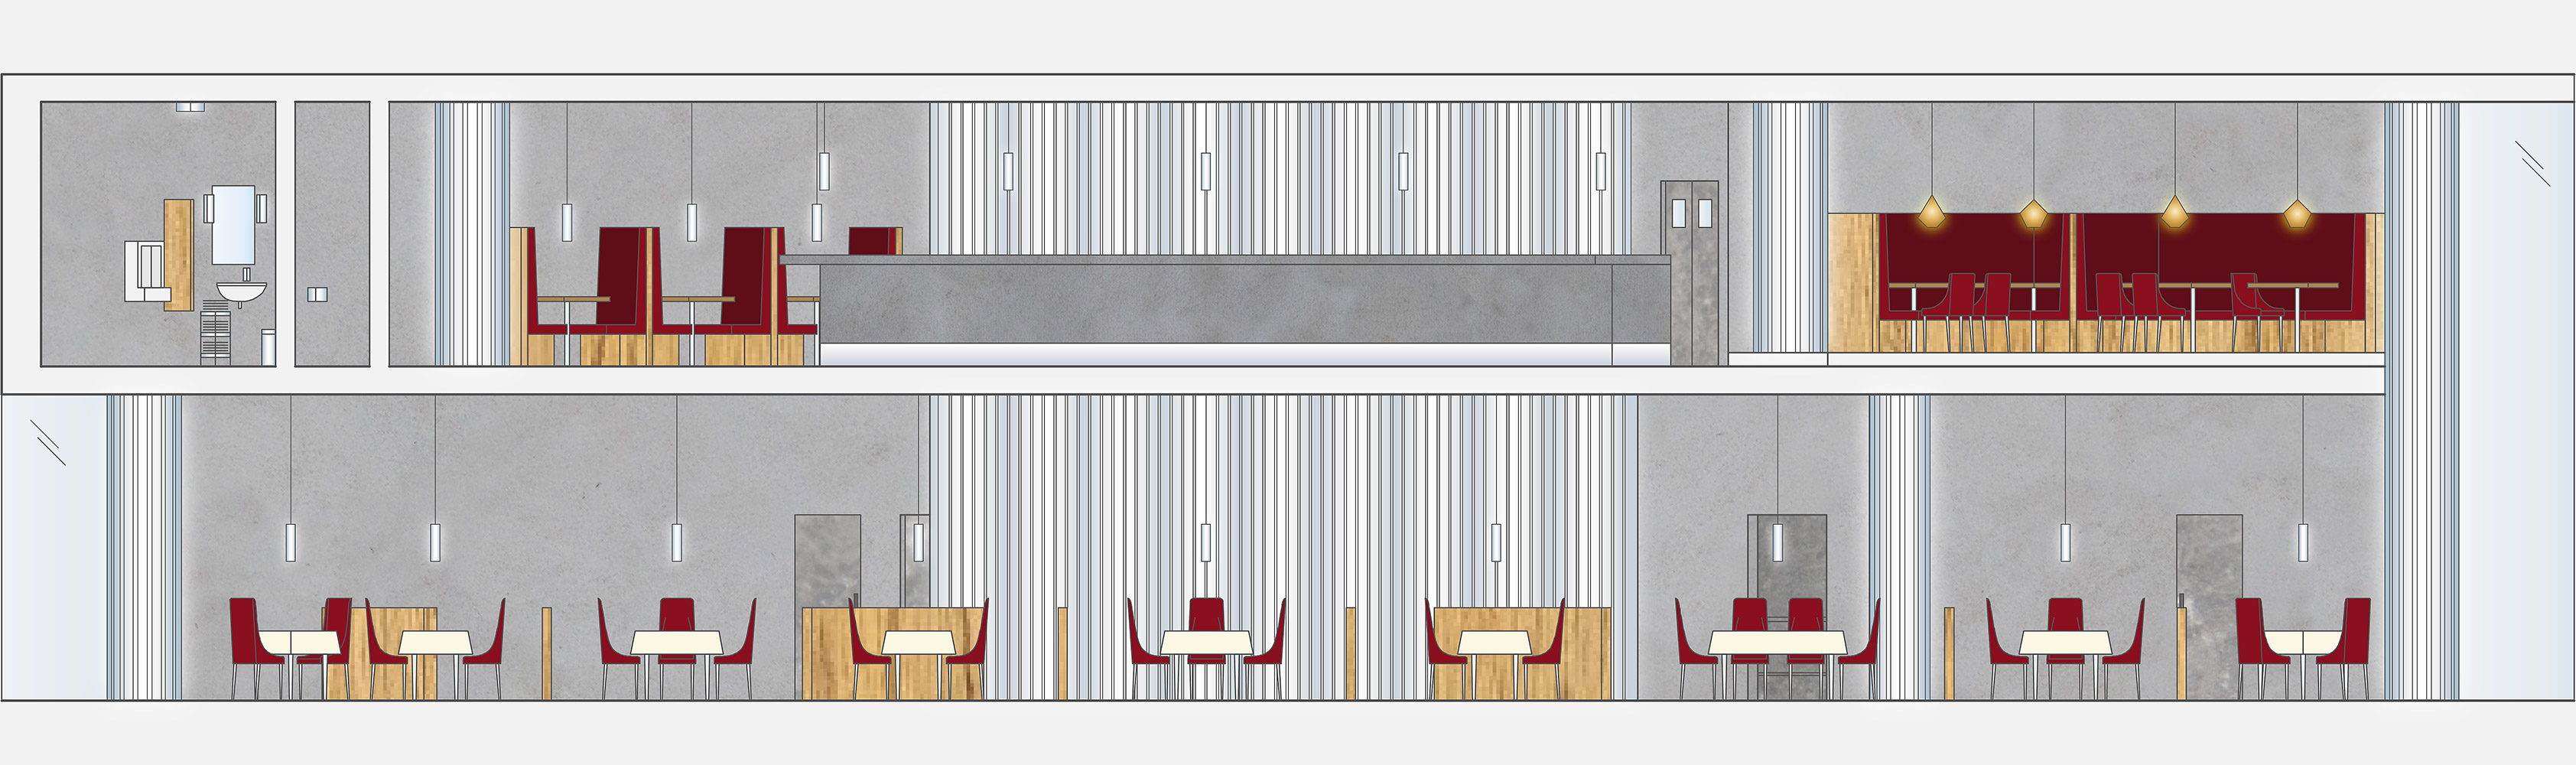 Interior elevation for Prohibit restaurant